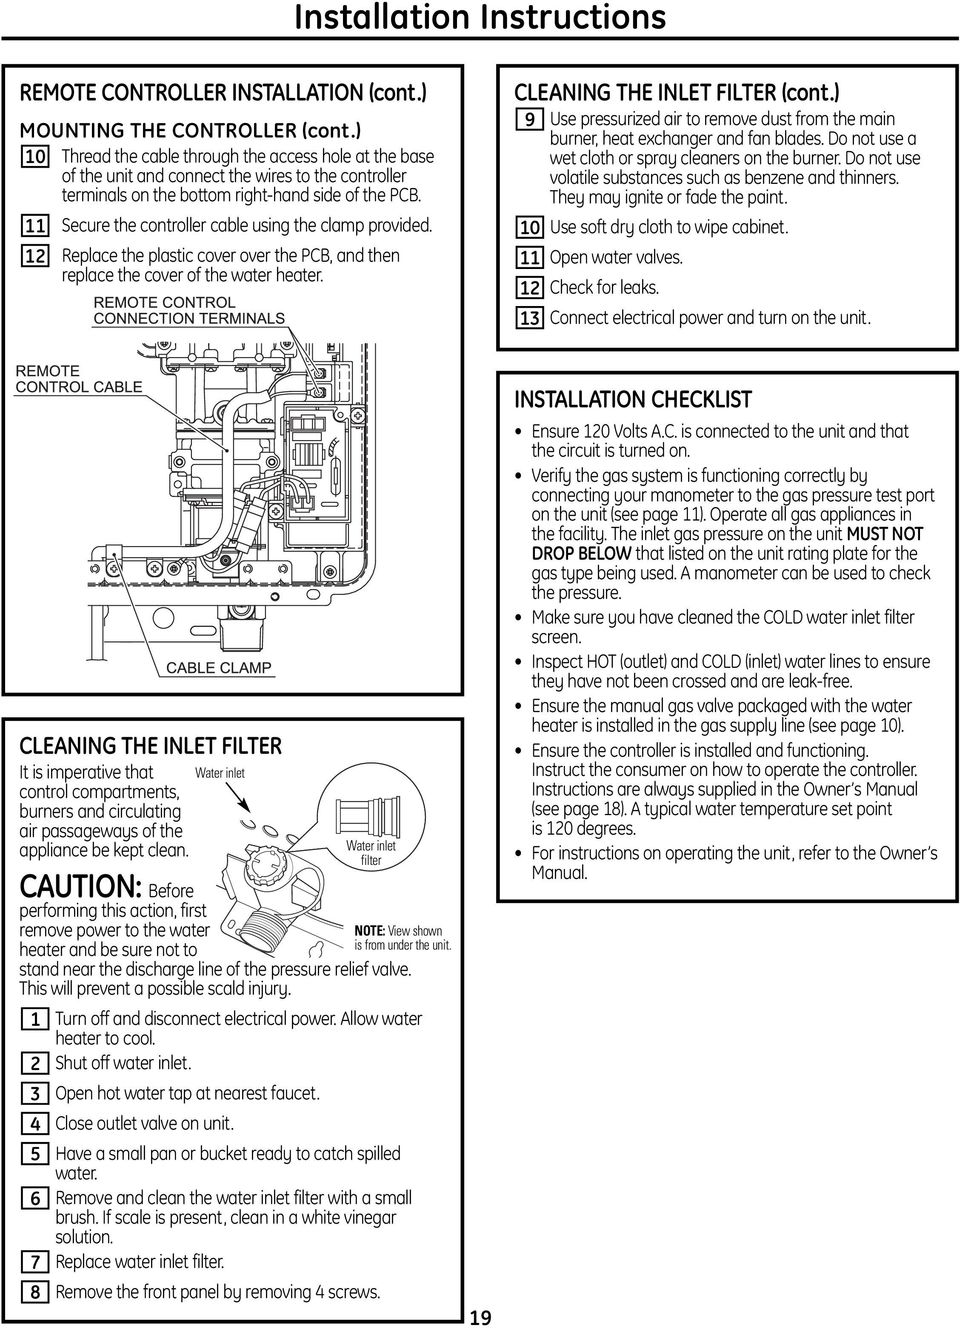 Installation Instructions Pdf Thread Fixed Kenmore 80 Series Electric Dryer Heating But Not 11 Secure The Controller Cable Using Clamp Provided 12 Replace Plastic Cover Over